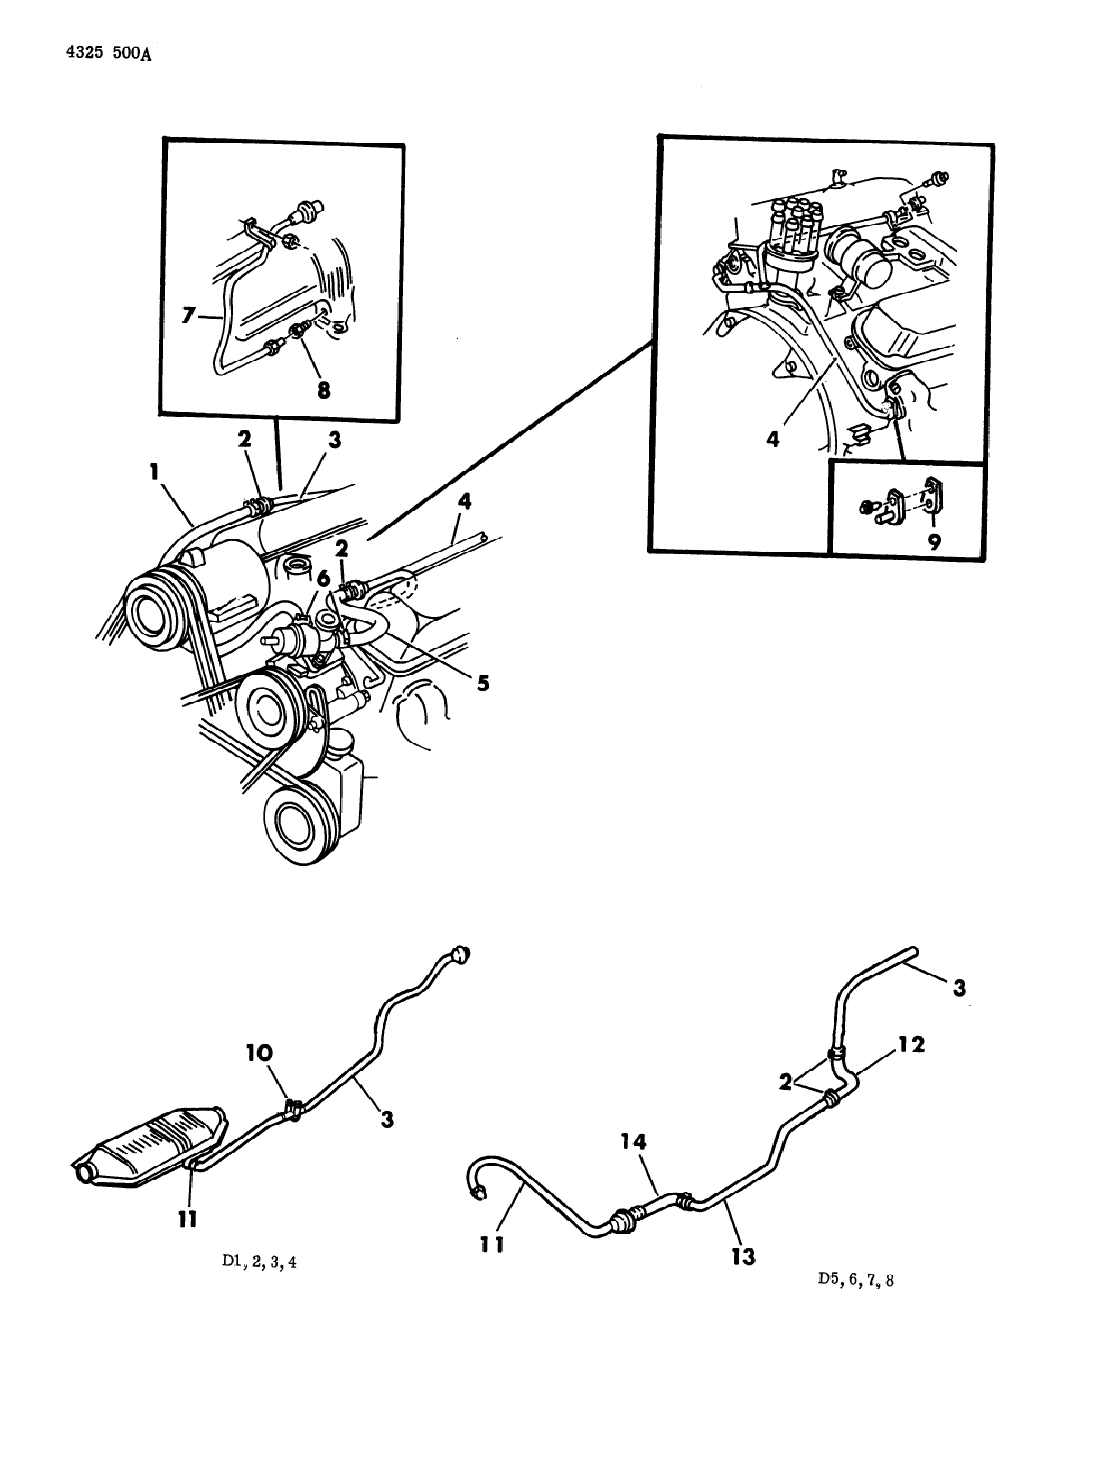 1991 Chevy C1500 Exhaust Diagram likewise 2001 Ford F150 Regular Cab moreover P 0900c15280082db0 moreover 100 moreover 1438959 Fuel Pressure Sensor Location. on dodge d150 exhaust